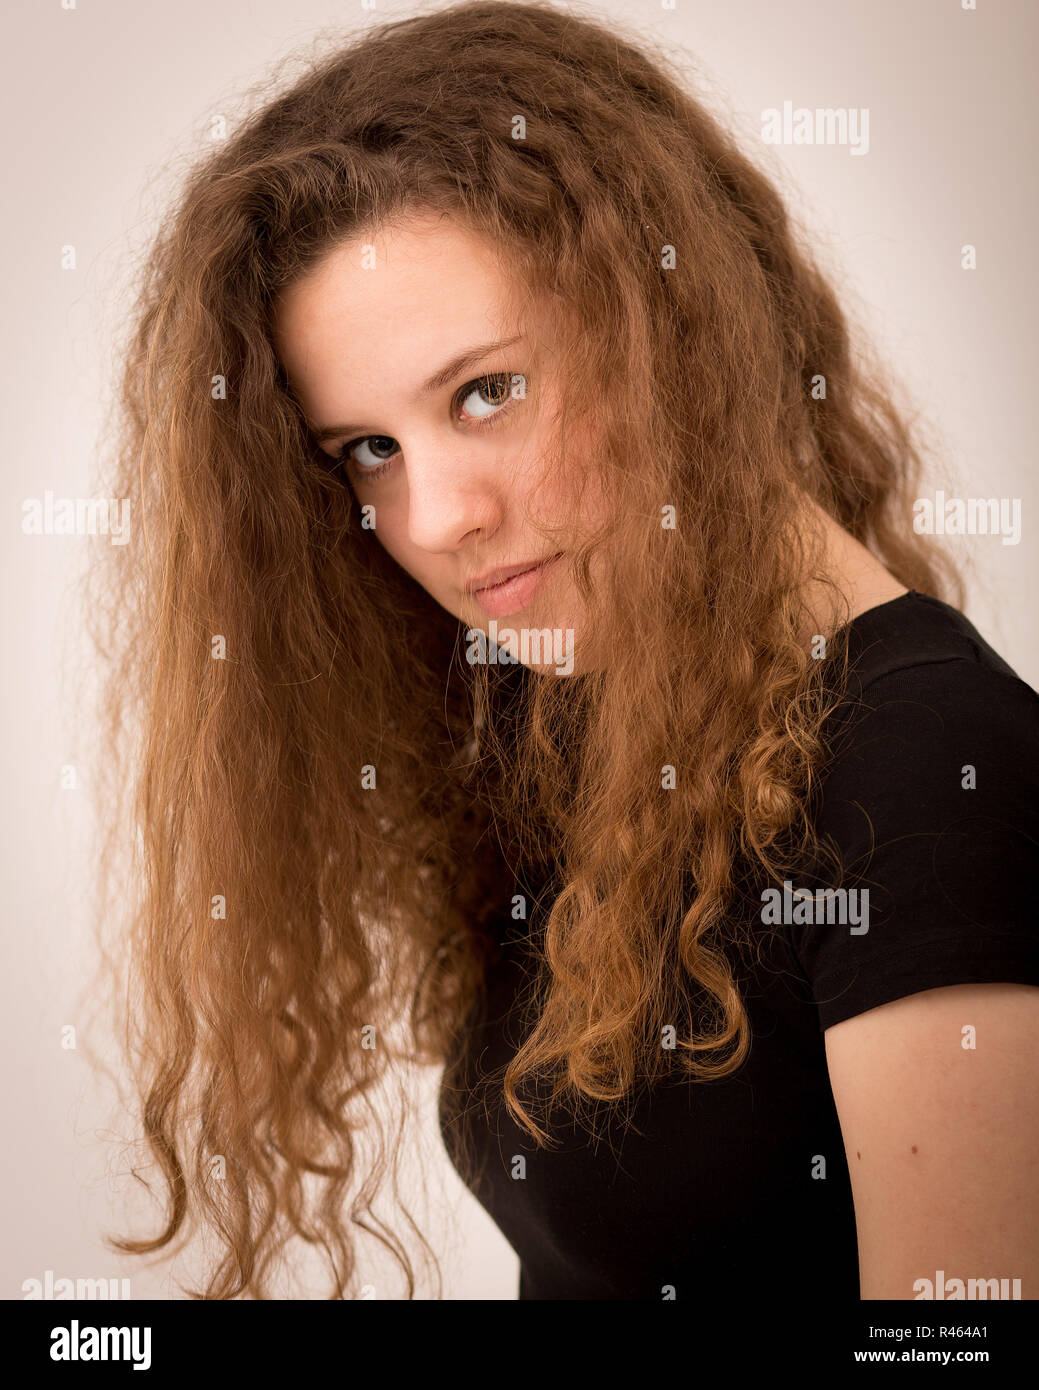 Teenager Woman With Long Curly Ginger Hair Stock Photo